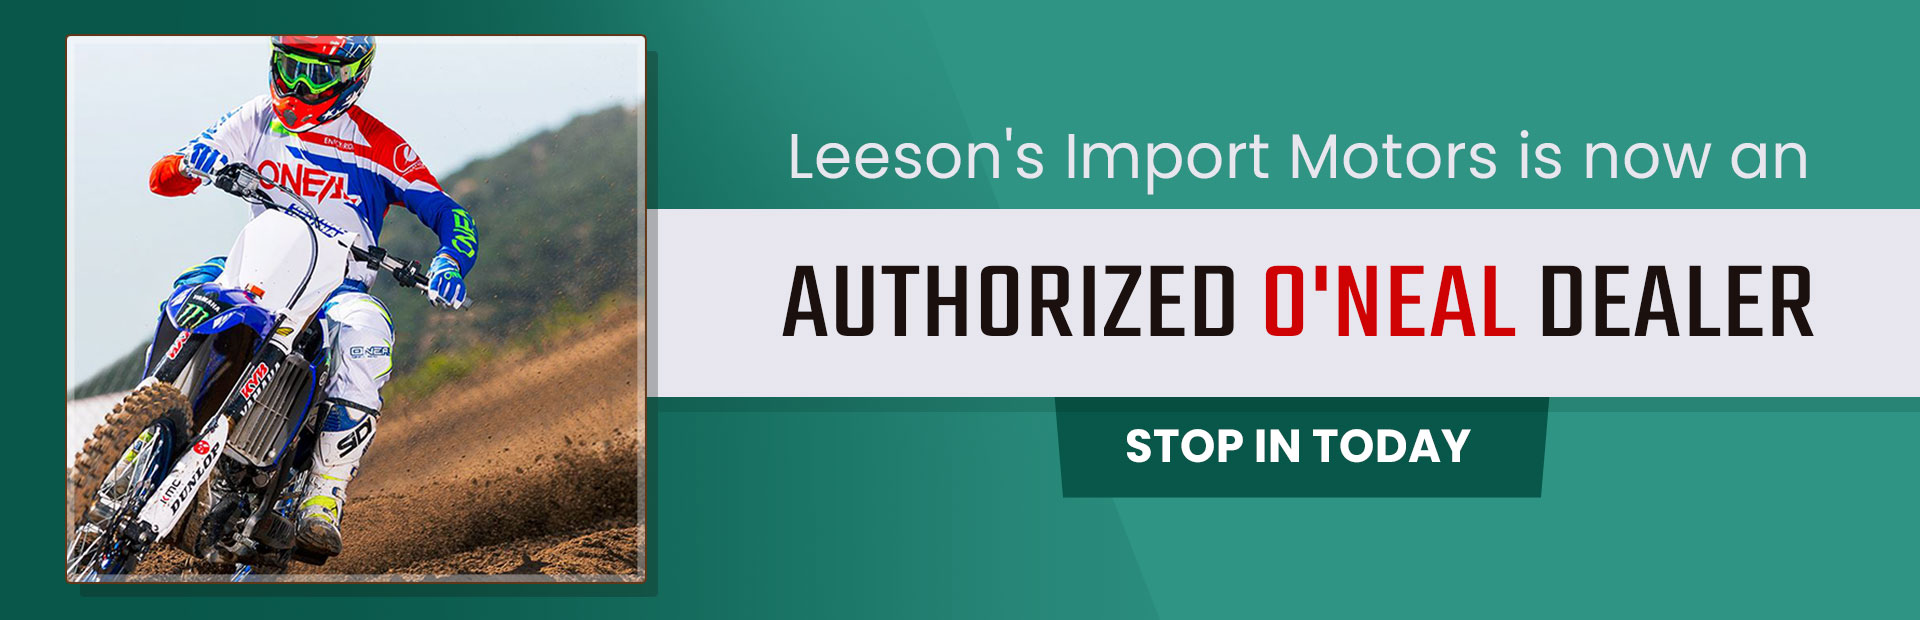 Leeson's Import Motors is now an authorized O'Neal dealer. Stop in today!